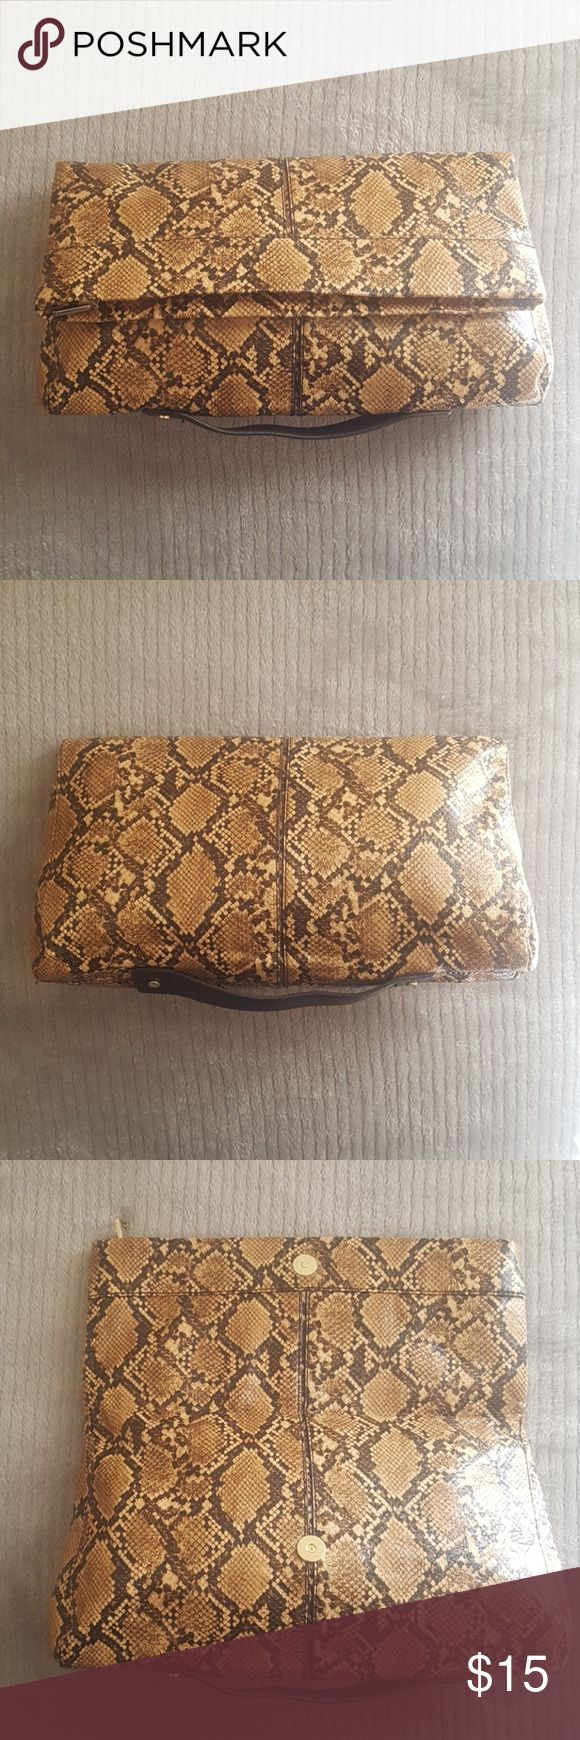 Animal print fold over clutch BAG Has zipper closure and inside zip pocket. Gently use. Dimensions 13Lx8Hx3w Mango Bags Clutches & Wristlets